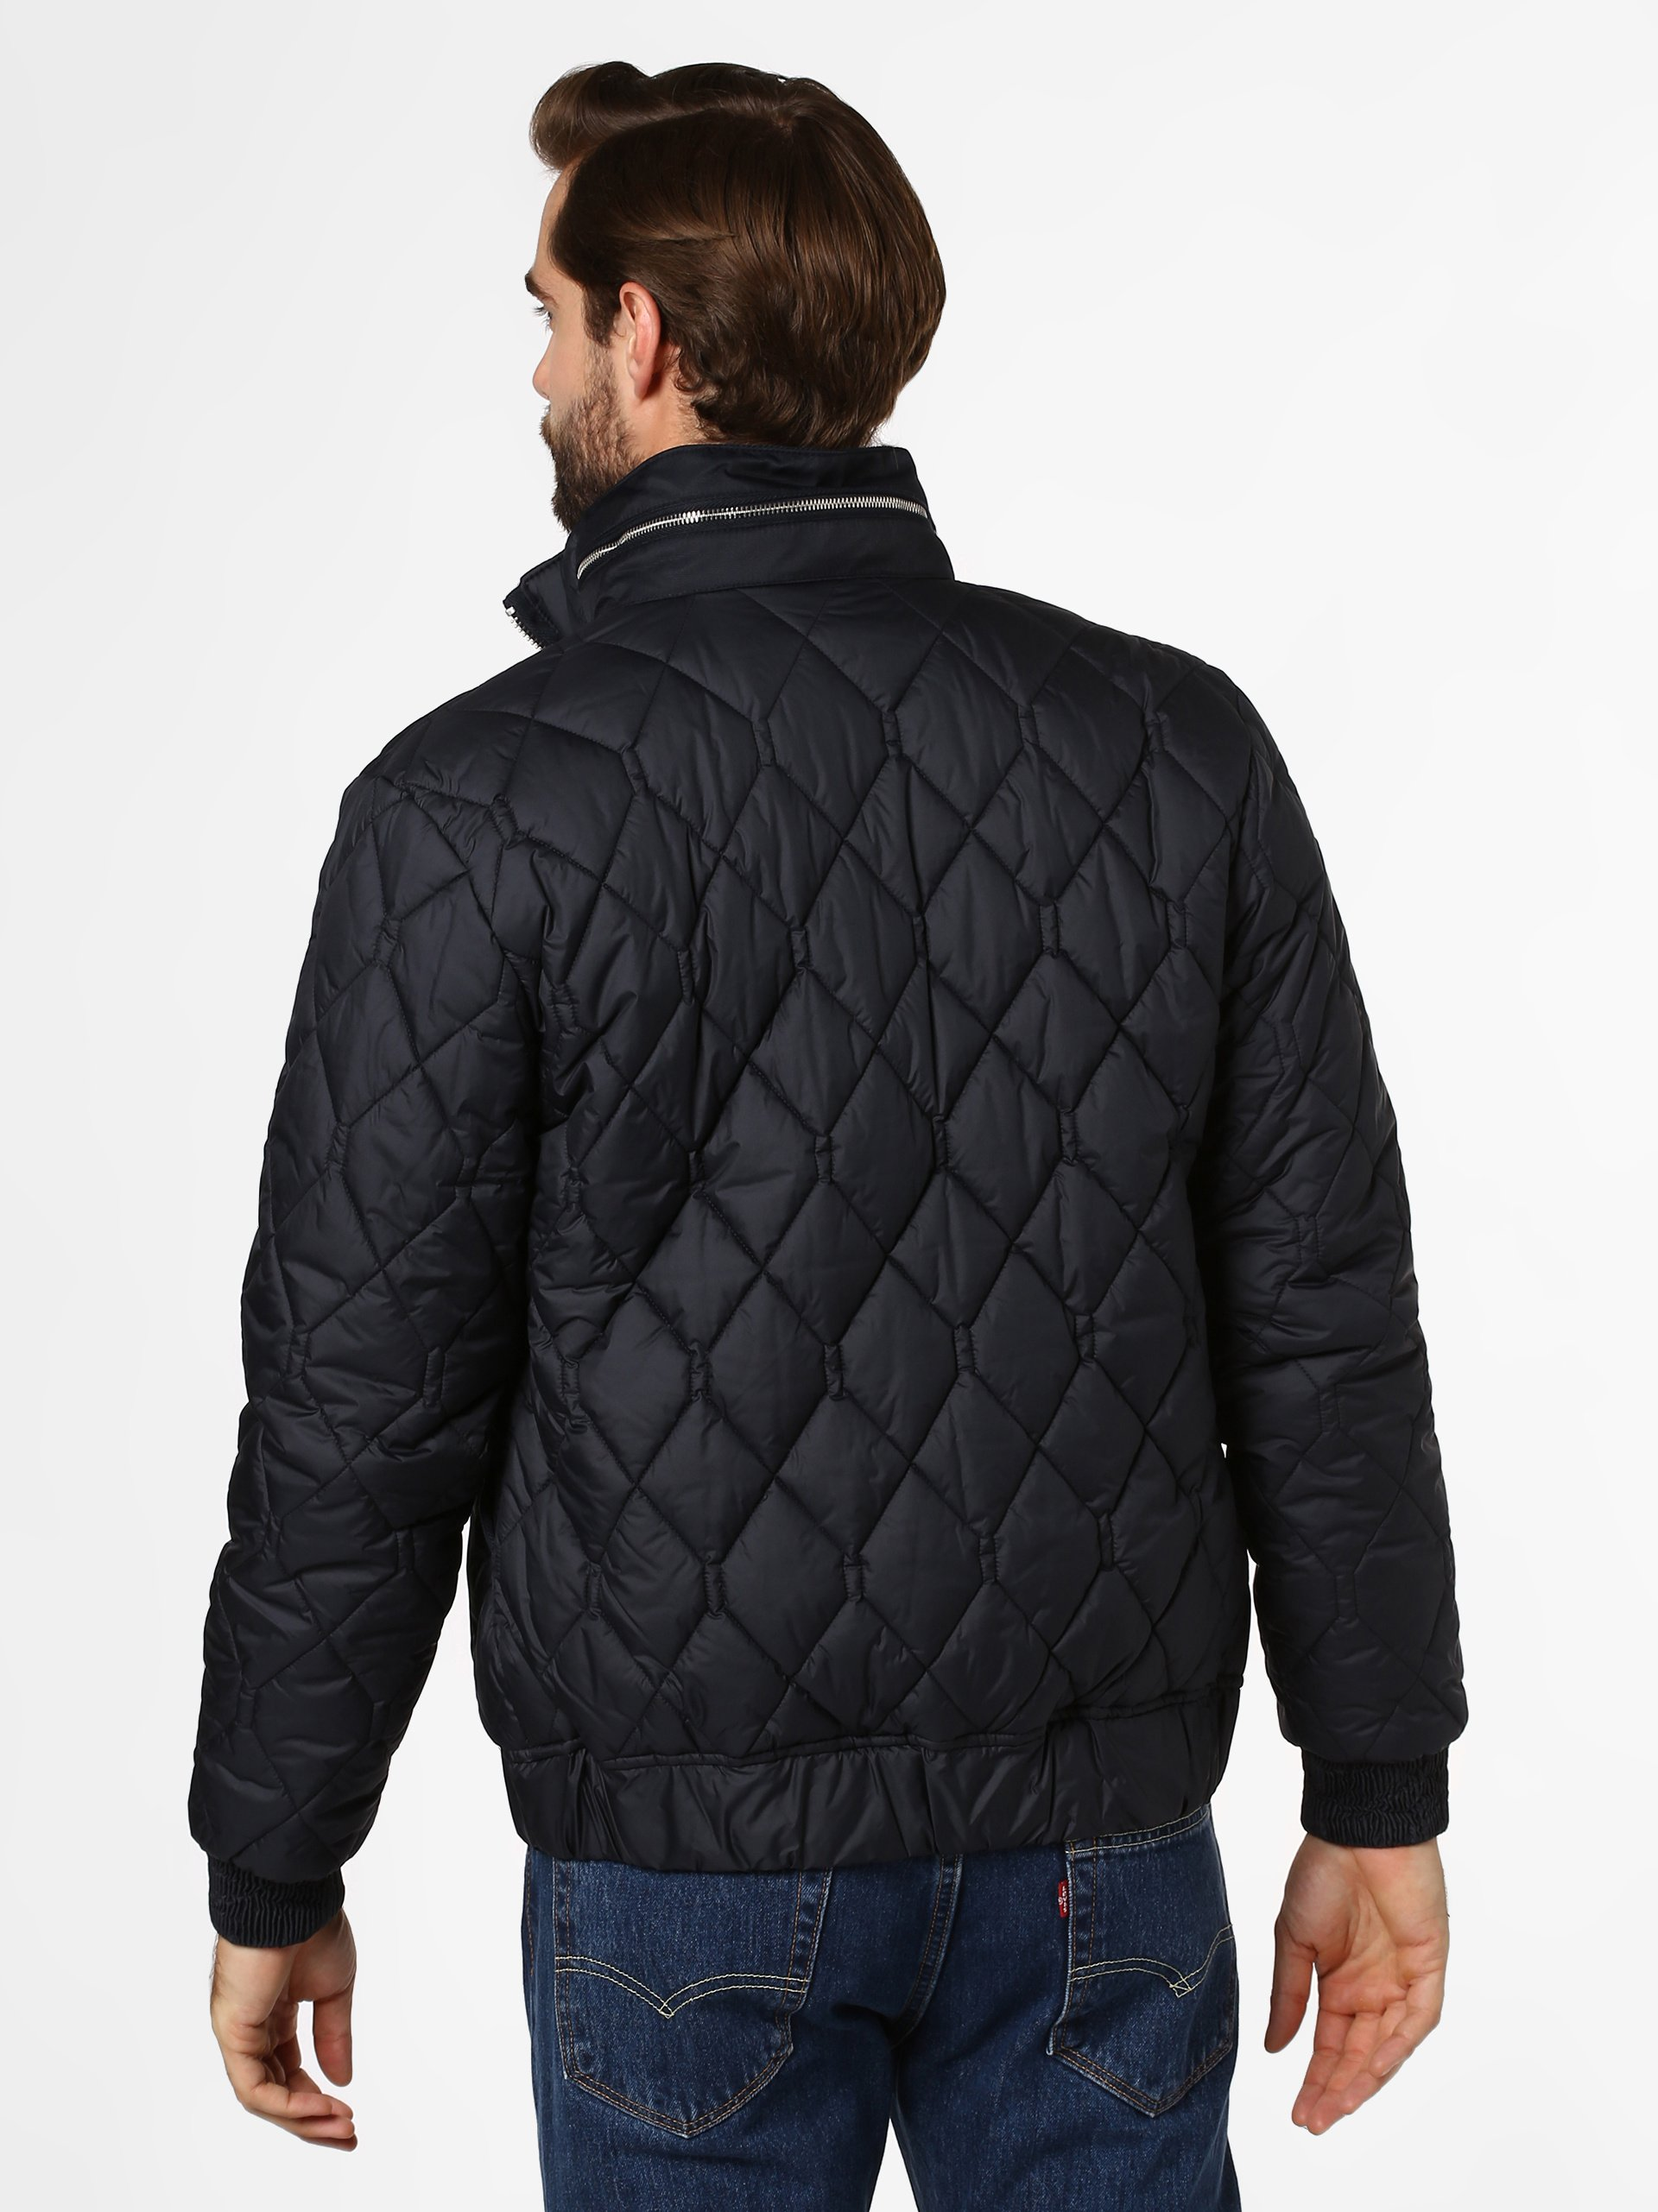 G-Star RAW Herren Steppjacke